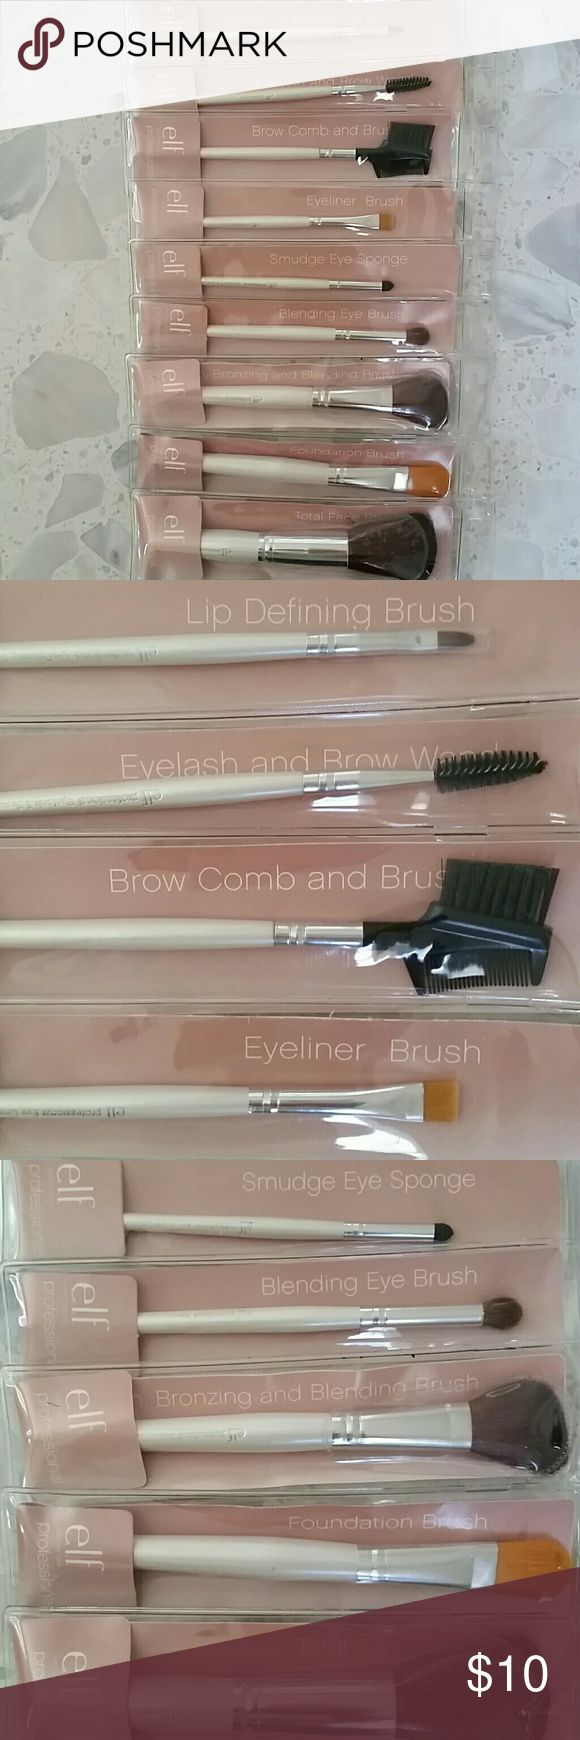 elf Professional Makeup Brush set Condition : Brand new in original package   A set of 9 essential professional brushes:  - Lip defining brush - Eyelash and brow wand - Brow comb and brush - Eyeliner brush - Smudge eye sponge  - Blending Eye brush  - Bronzing and blending brush - Foundation brush - Total face brush  ***Can offer a discount if you purchase elf brush set + VS makeup kit + CK Eternity Moment perfume. Check out my closet*** ELF Makeup Brushes & Tools